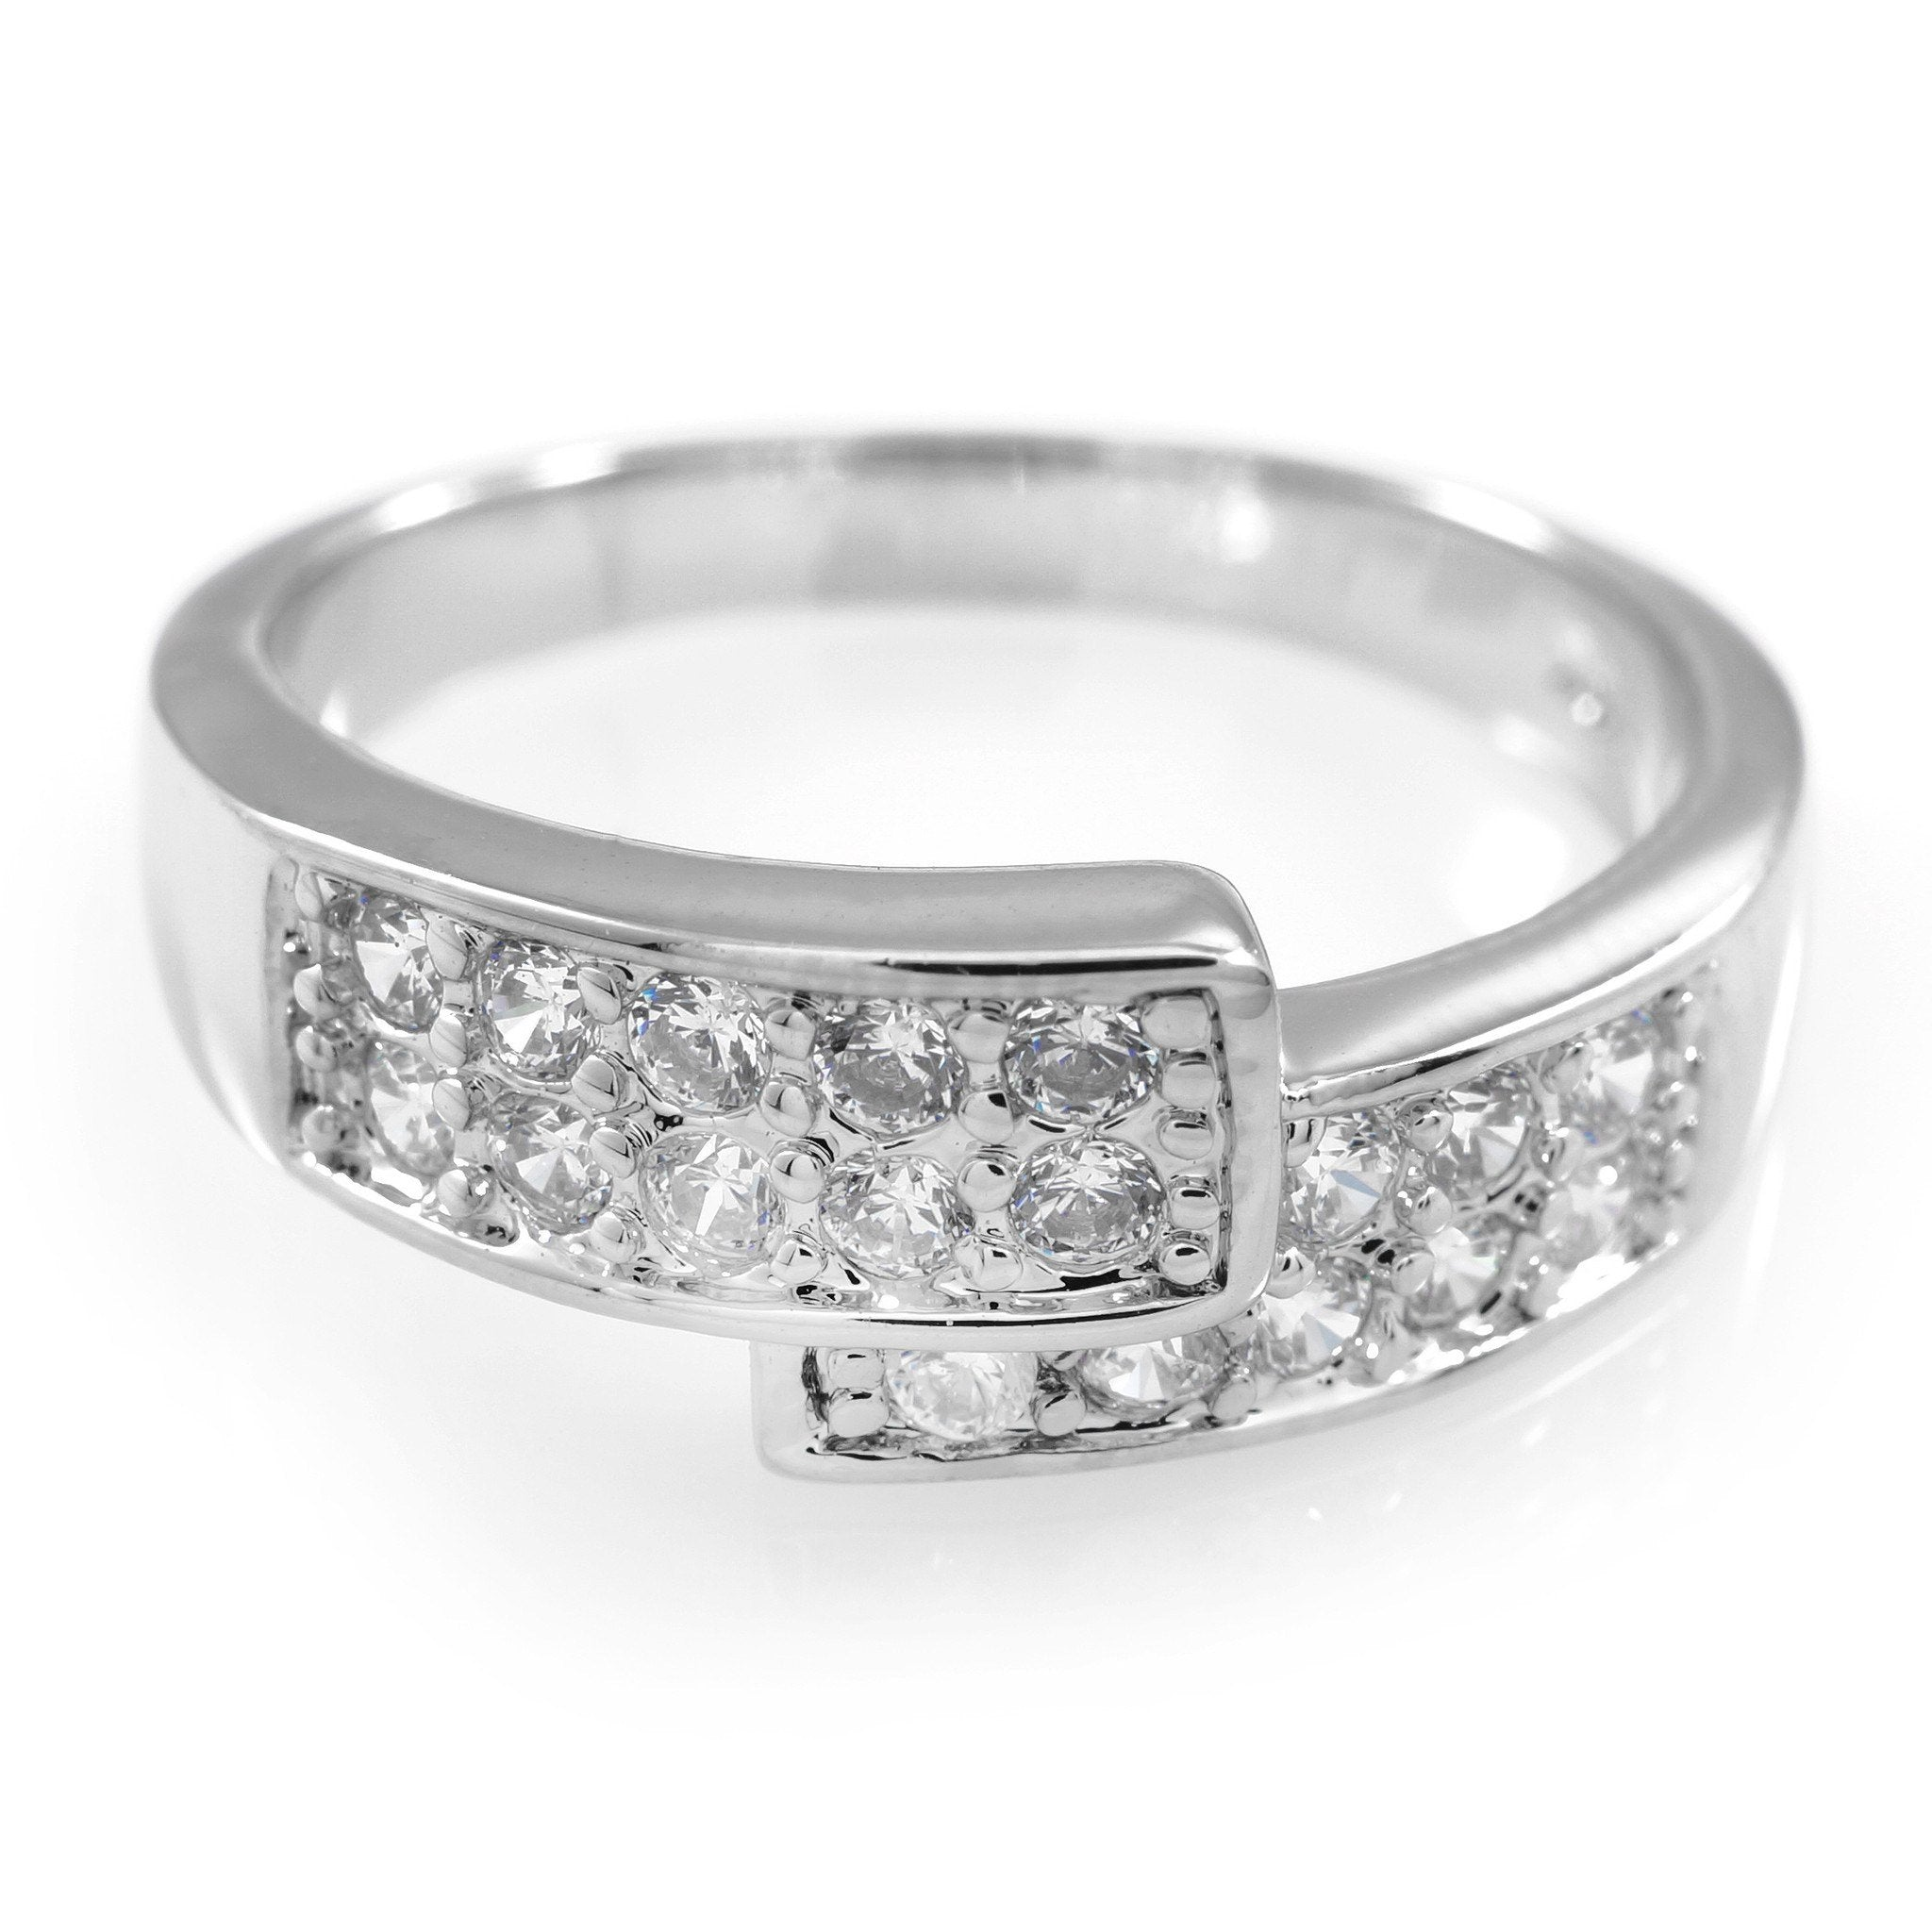 Affordable 18K White Gold Iced Out Engagement Band Pinky Ring - White Background